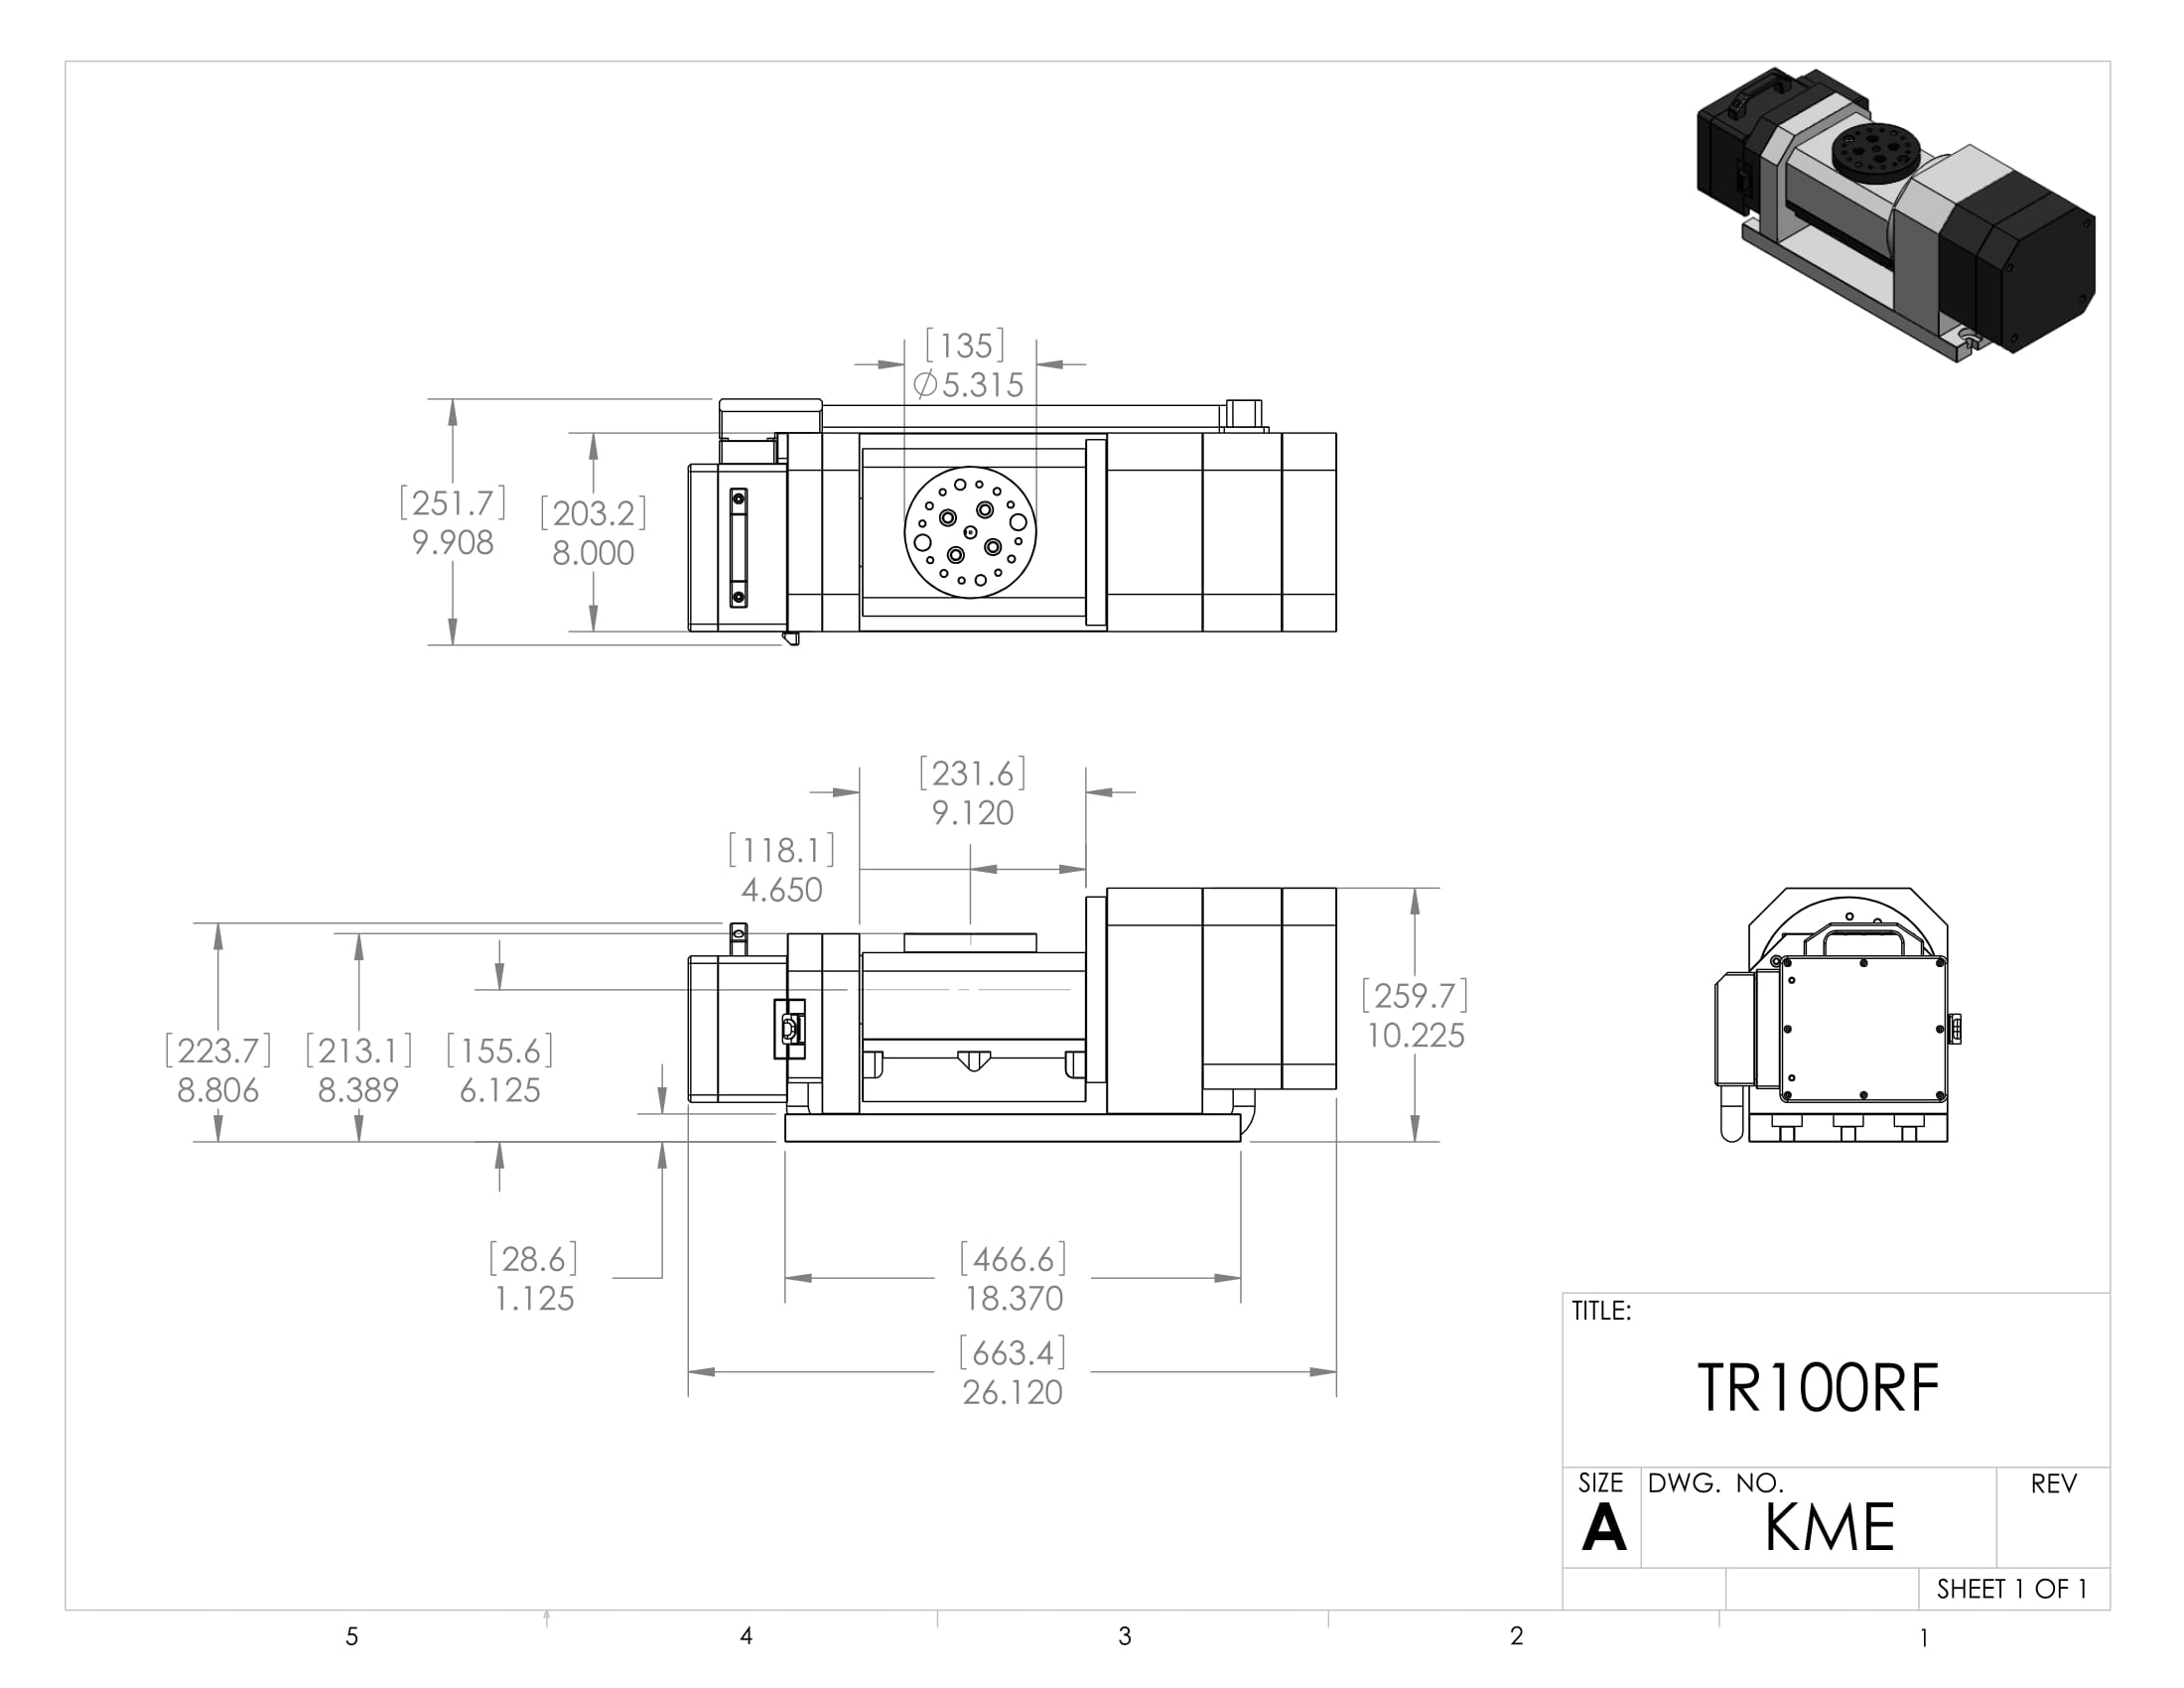 Vdo 370 155 Wiring Diagram Trusted Diagrams Clock Trunnion Tables For 5 Axis Machining Vmcs Kme Cnc Systems